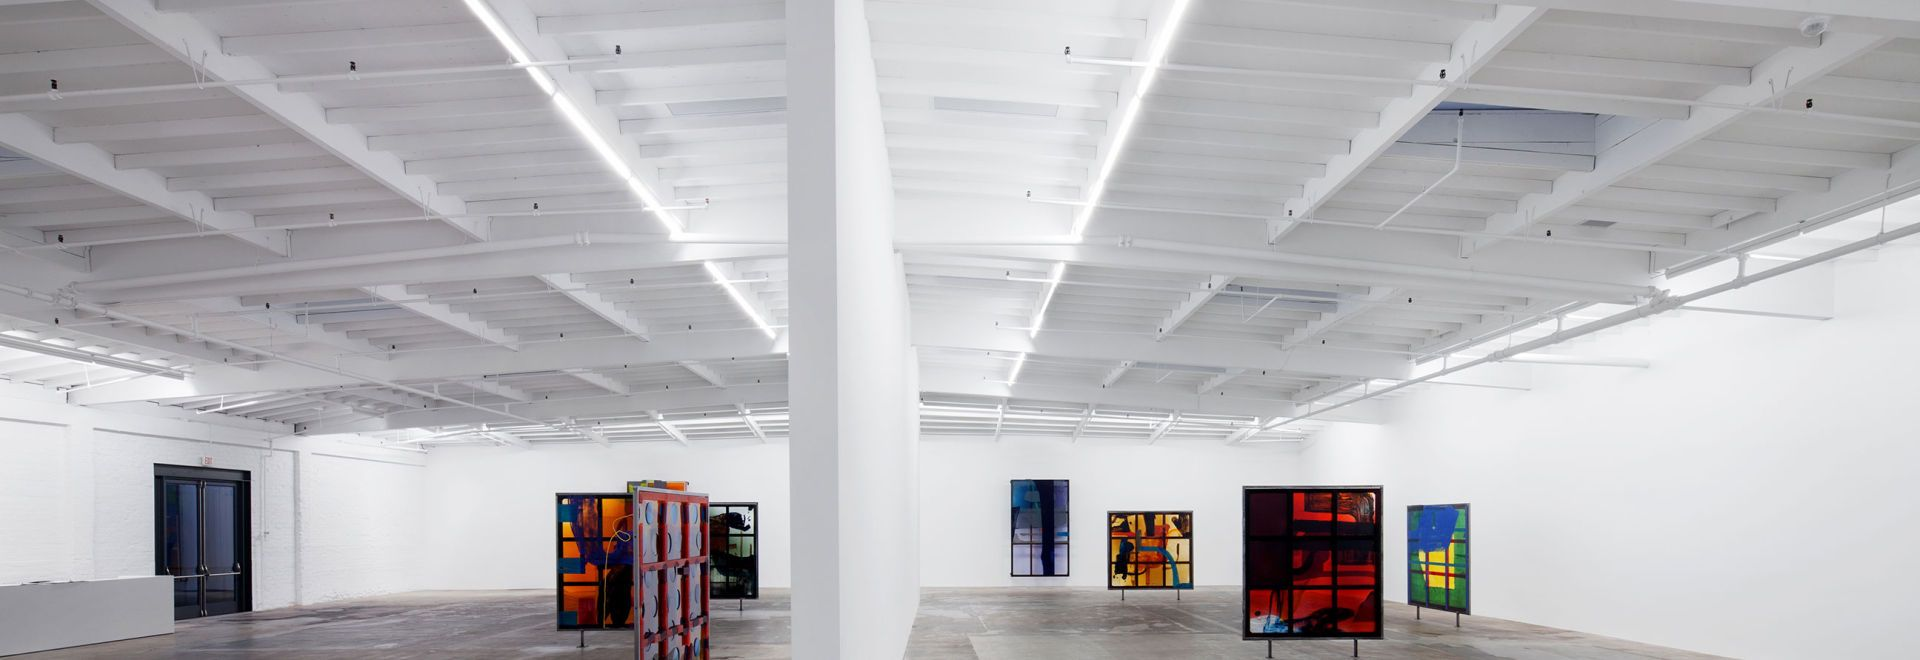 At Maccarone Gallery Prudential Microwash Named As Accomplice With Grand Plans For Her Los Angeles Expansion New York Linear Lighting Prudential Gallery